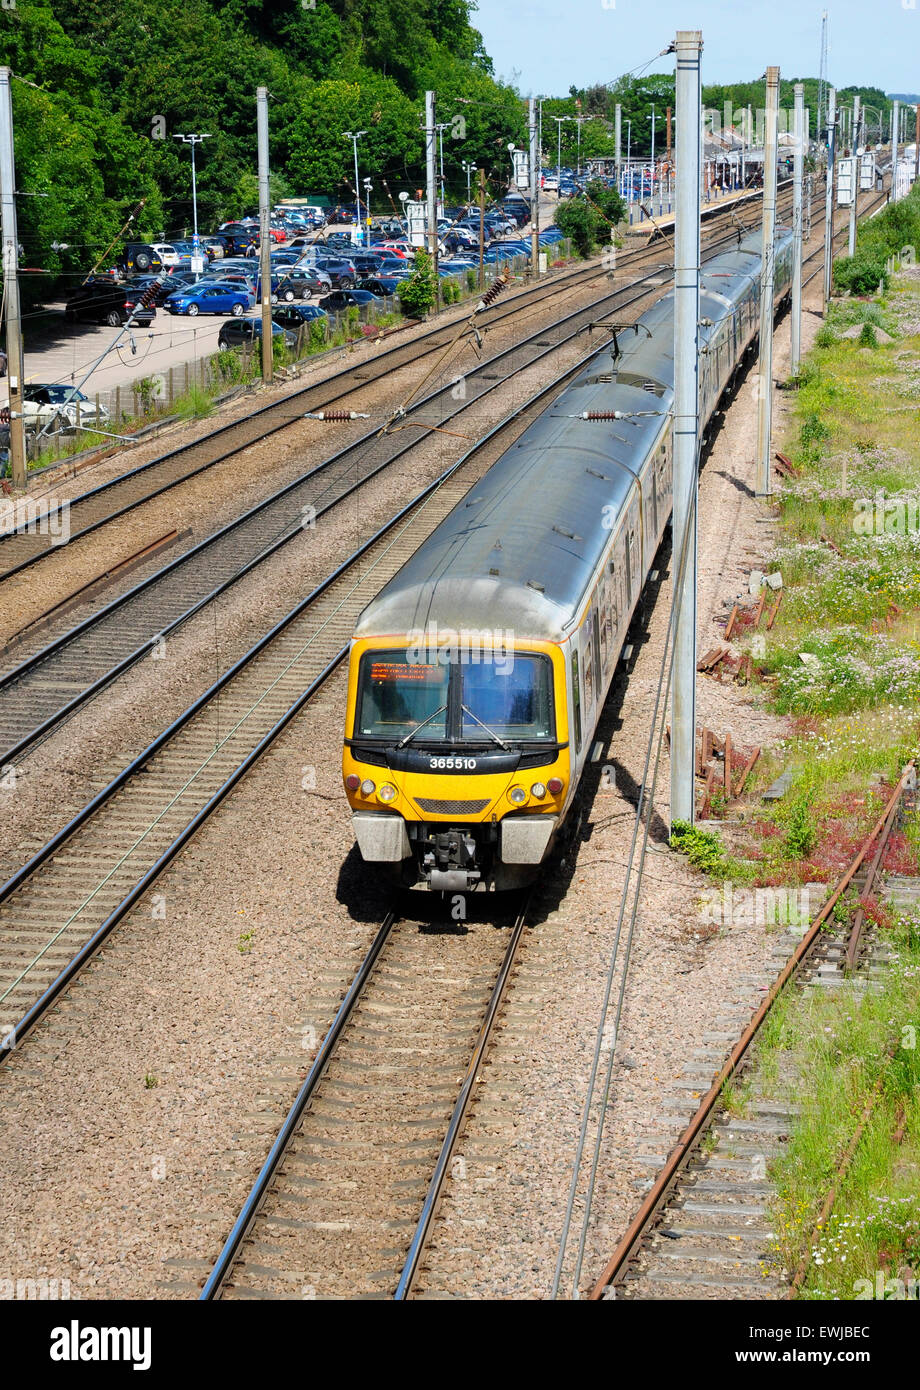 EMU 365510 leaves Hitchin, Hertfordshire with a southbound train to London King's Cross - Stock Image